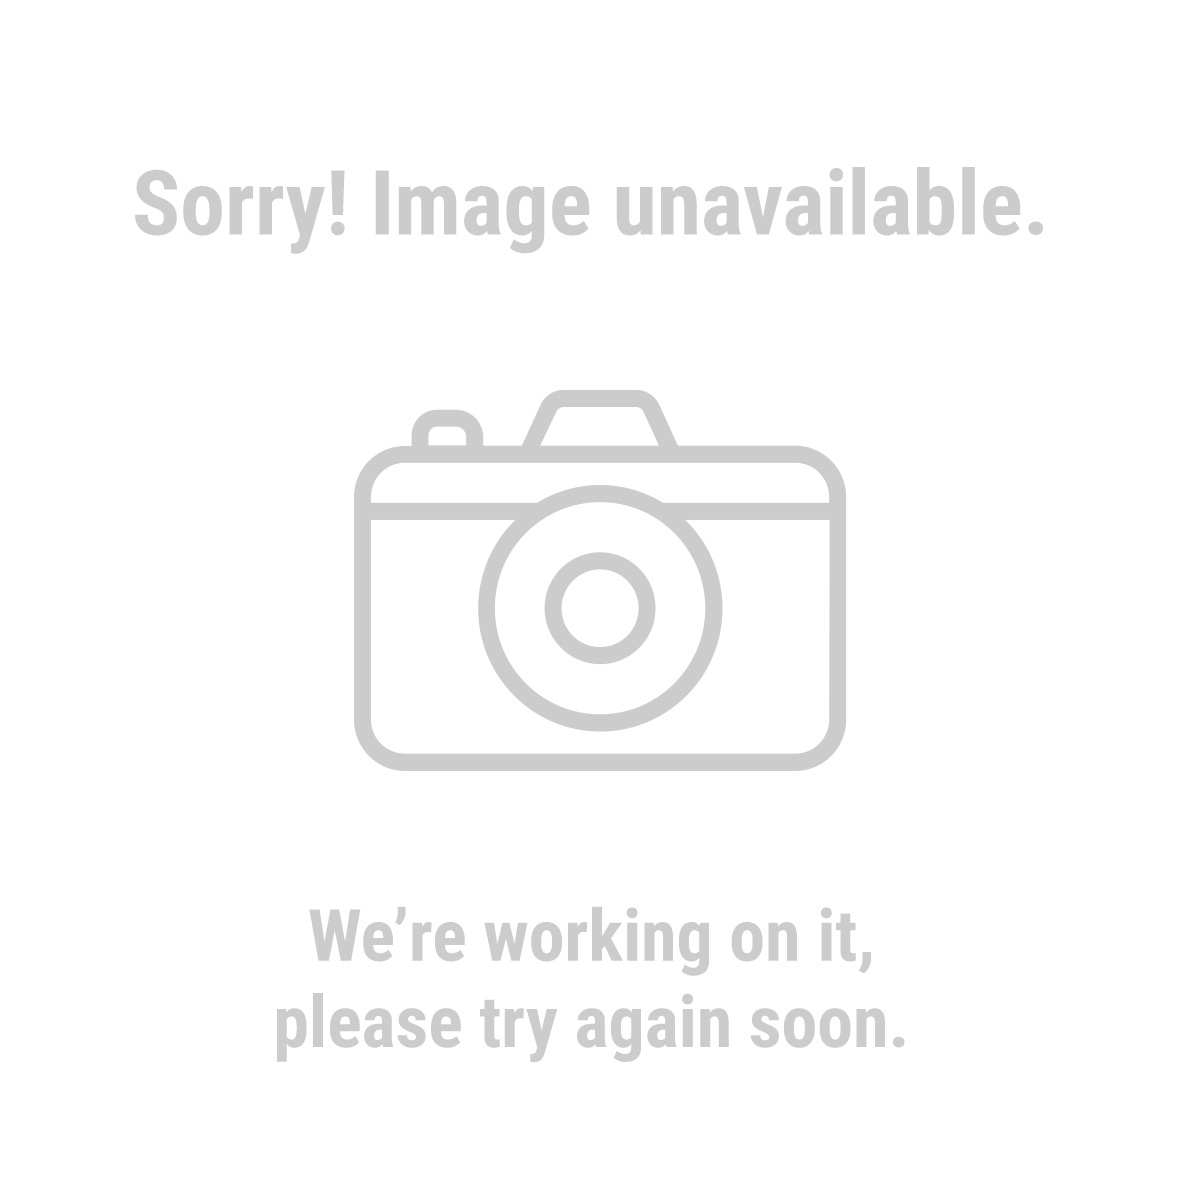 Best Saw Blade To Cut Laminate Flooring